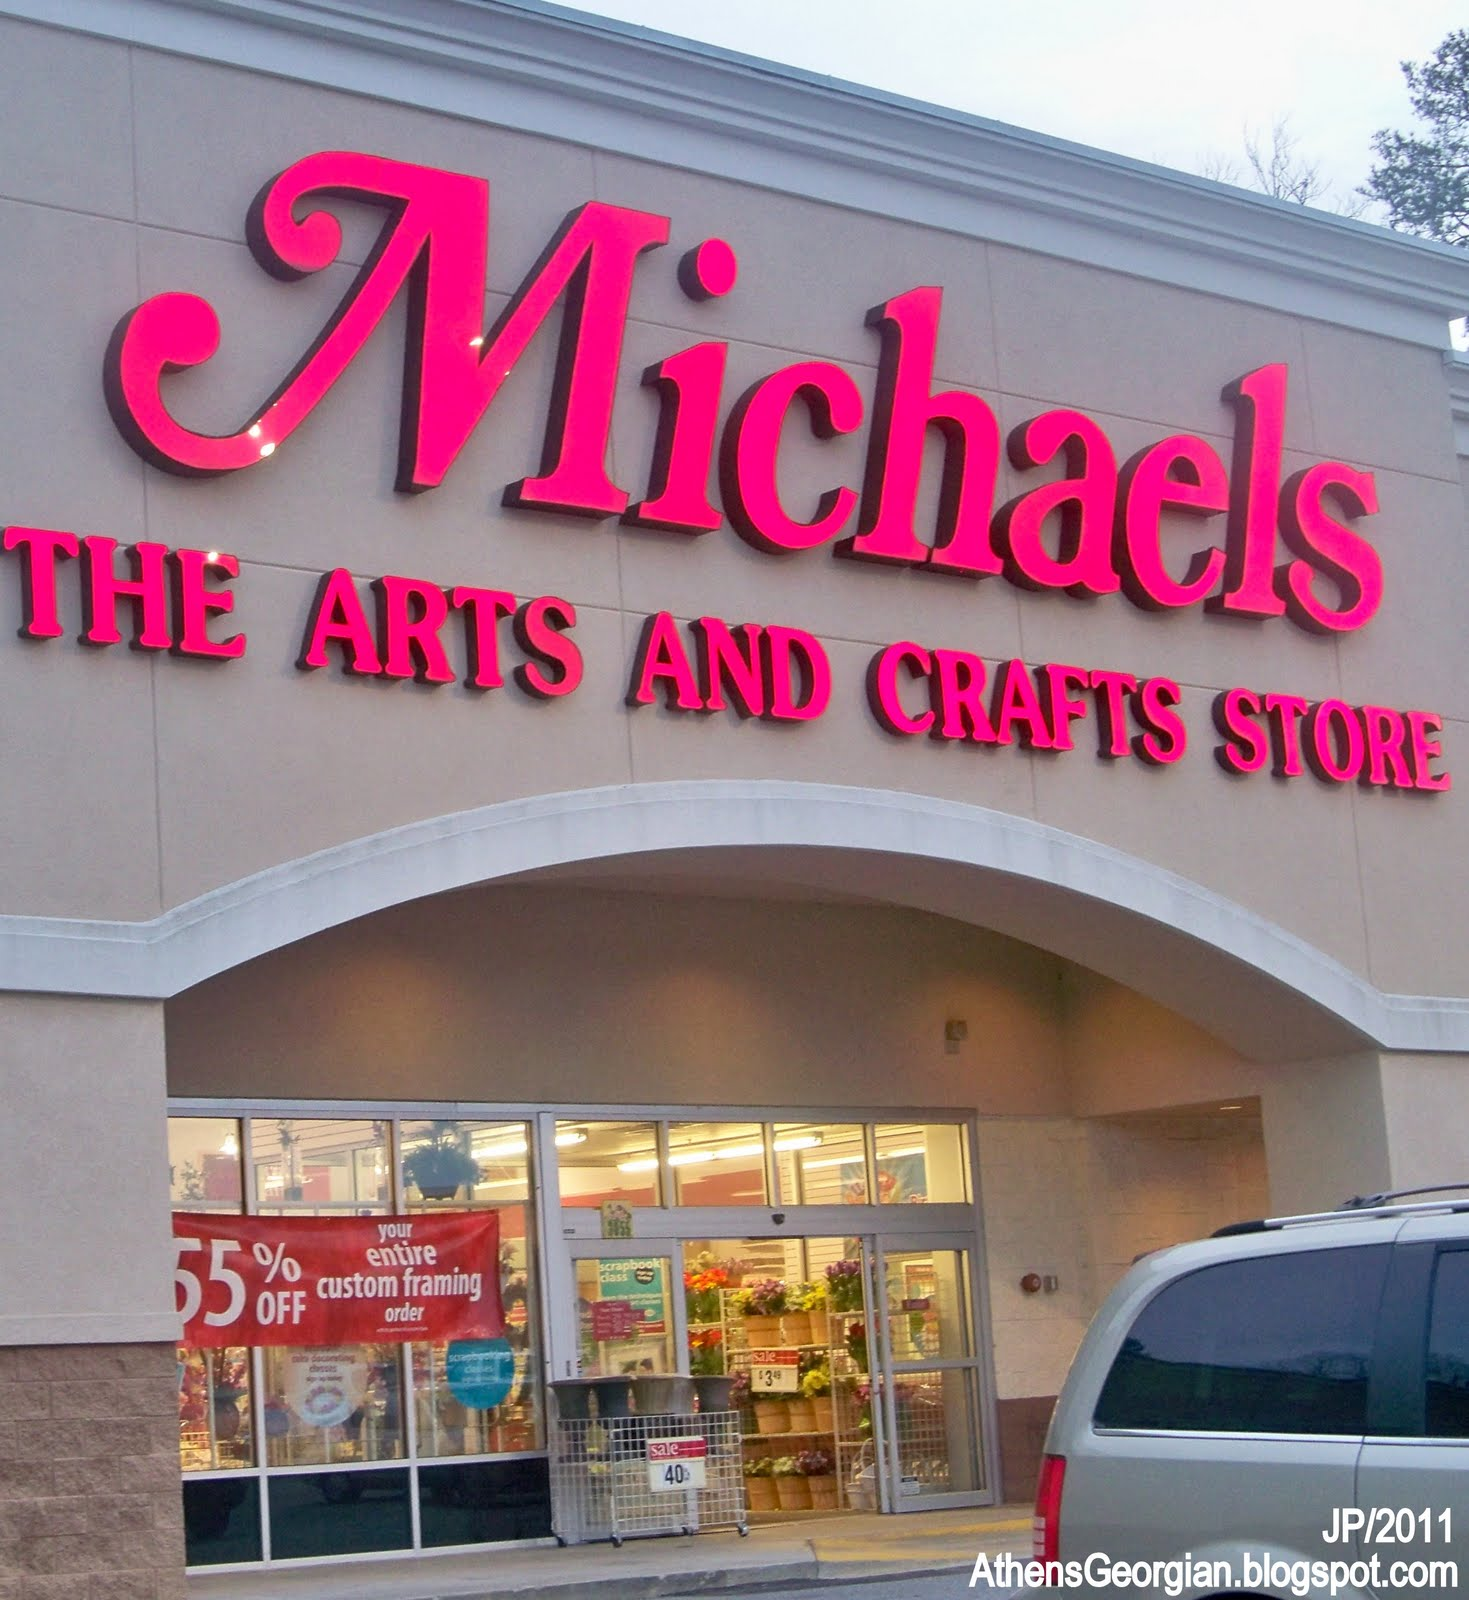 Michaels Stores, Inc., doing business as Michaels, is the largest American arts and crafts retail chain that currently operates more than 1, stores (consisting of 1, Michaels stores in 49 US states and Canada, Aaron Brothers stores and 34 Pat Catan's stores) as of May 31,